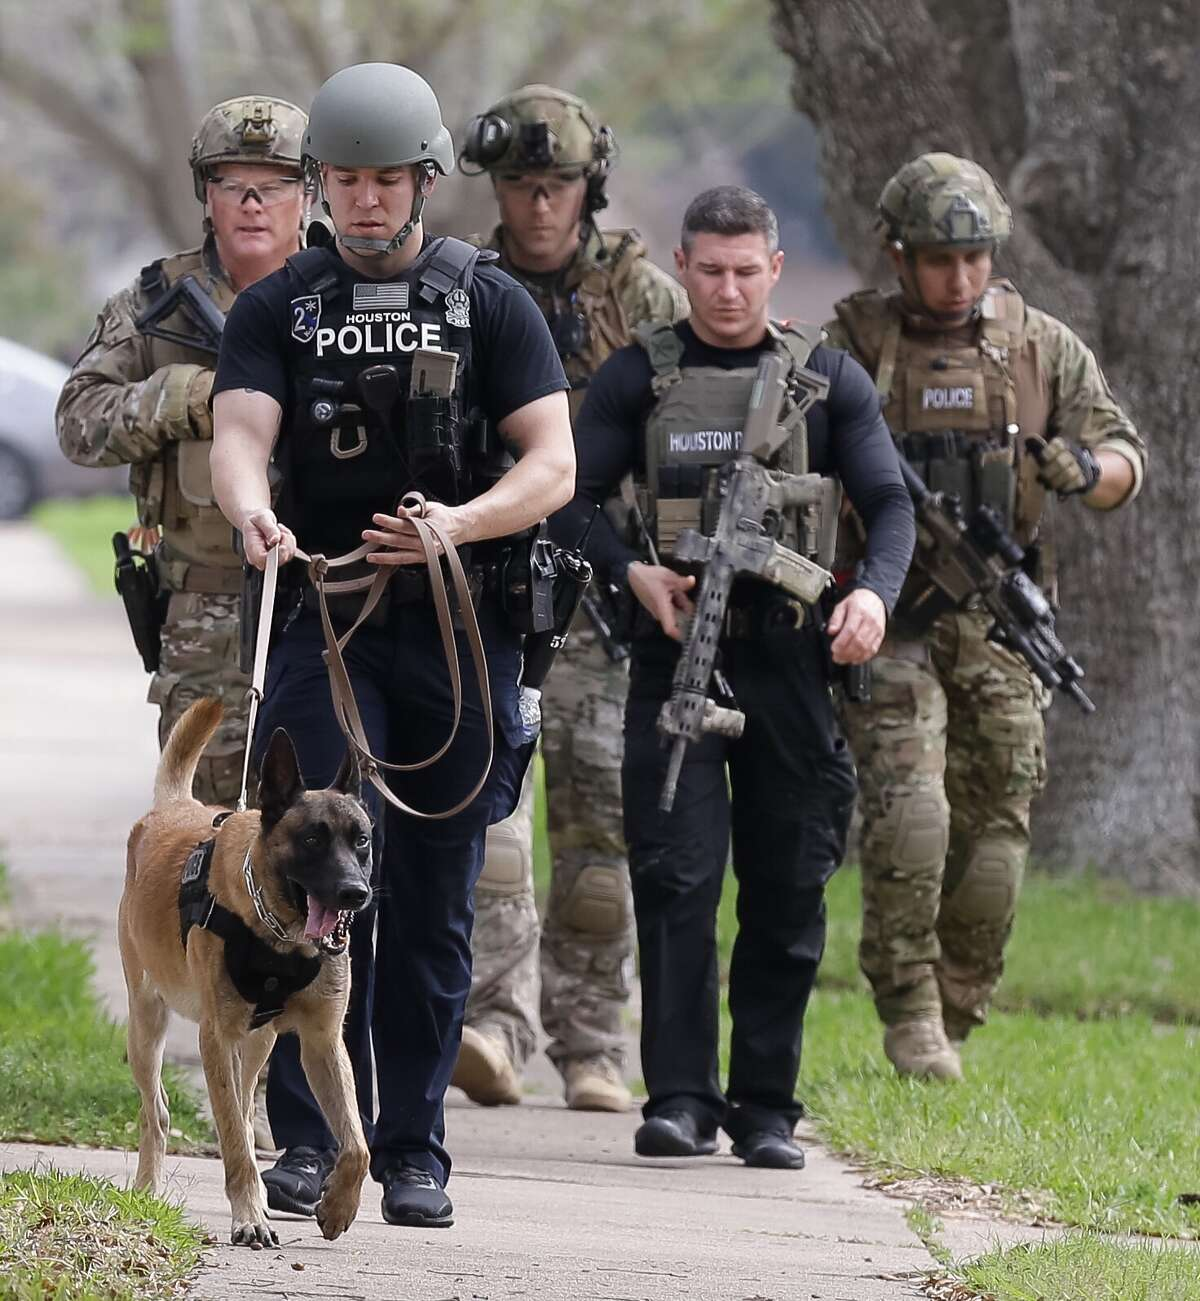 Houston police search the scene in a southwest neighborhood where two officers were shot Tuesday. It was the fourth attack on local police in less than two years.